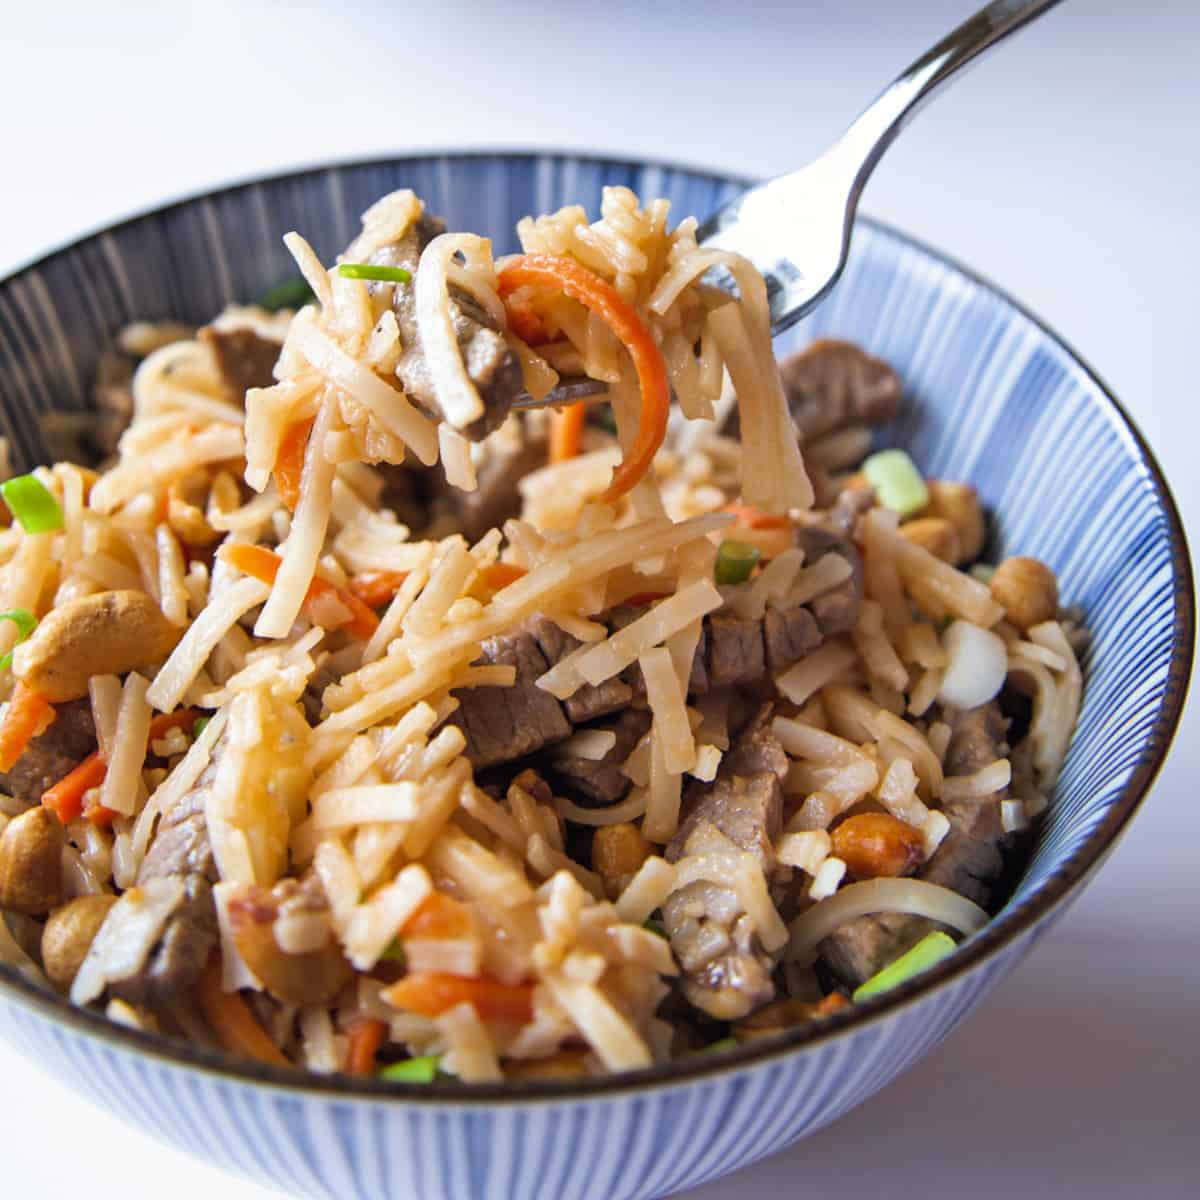 beef pad thai in a blue striped bowl with a fork